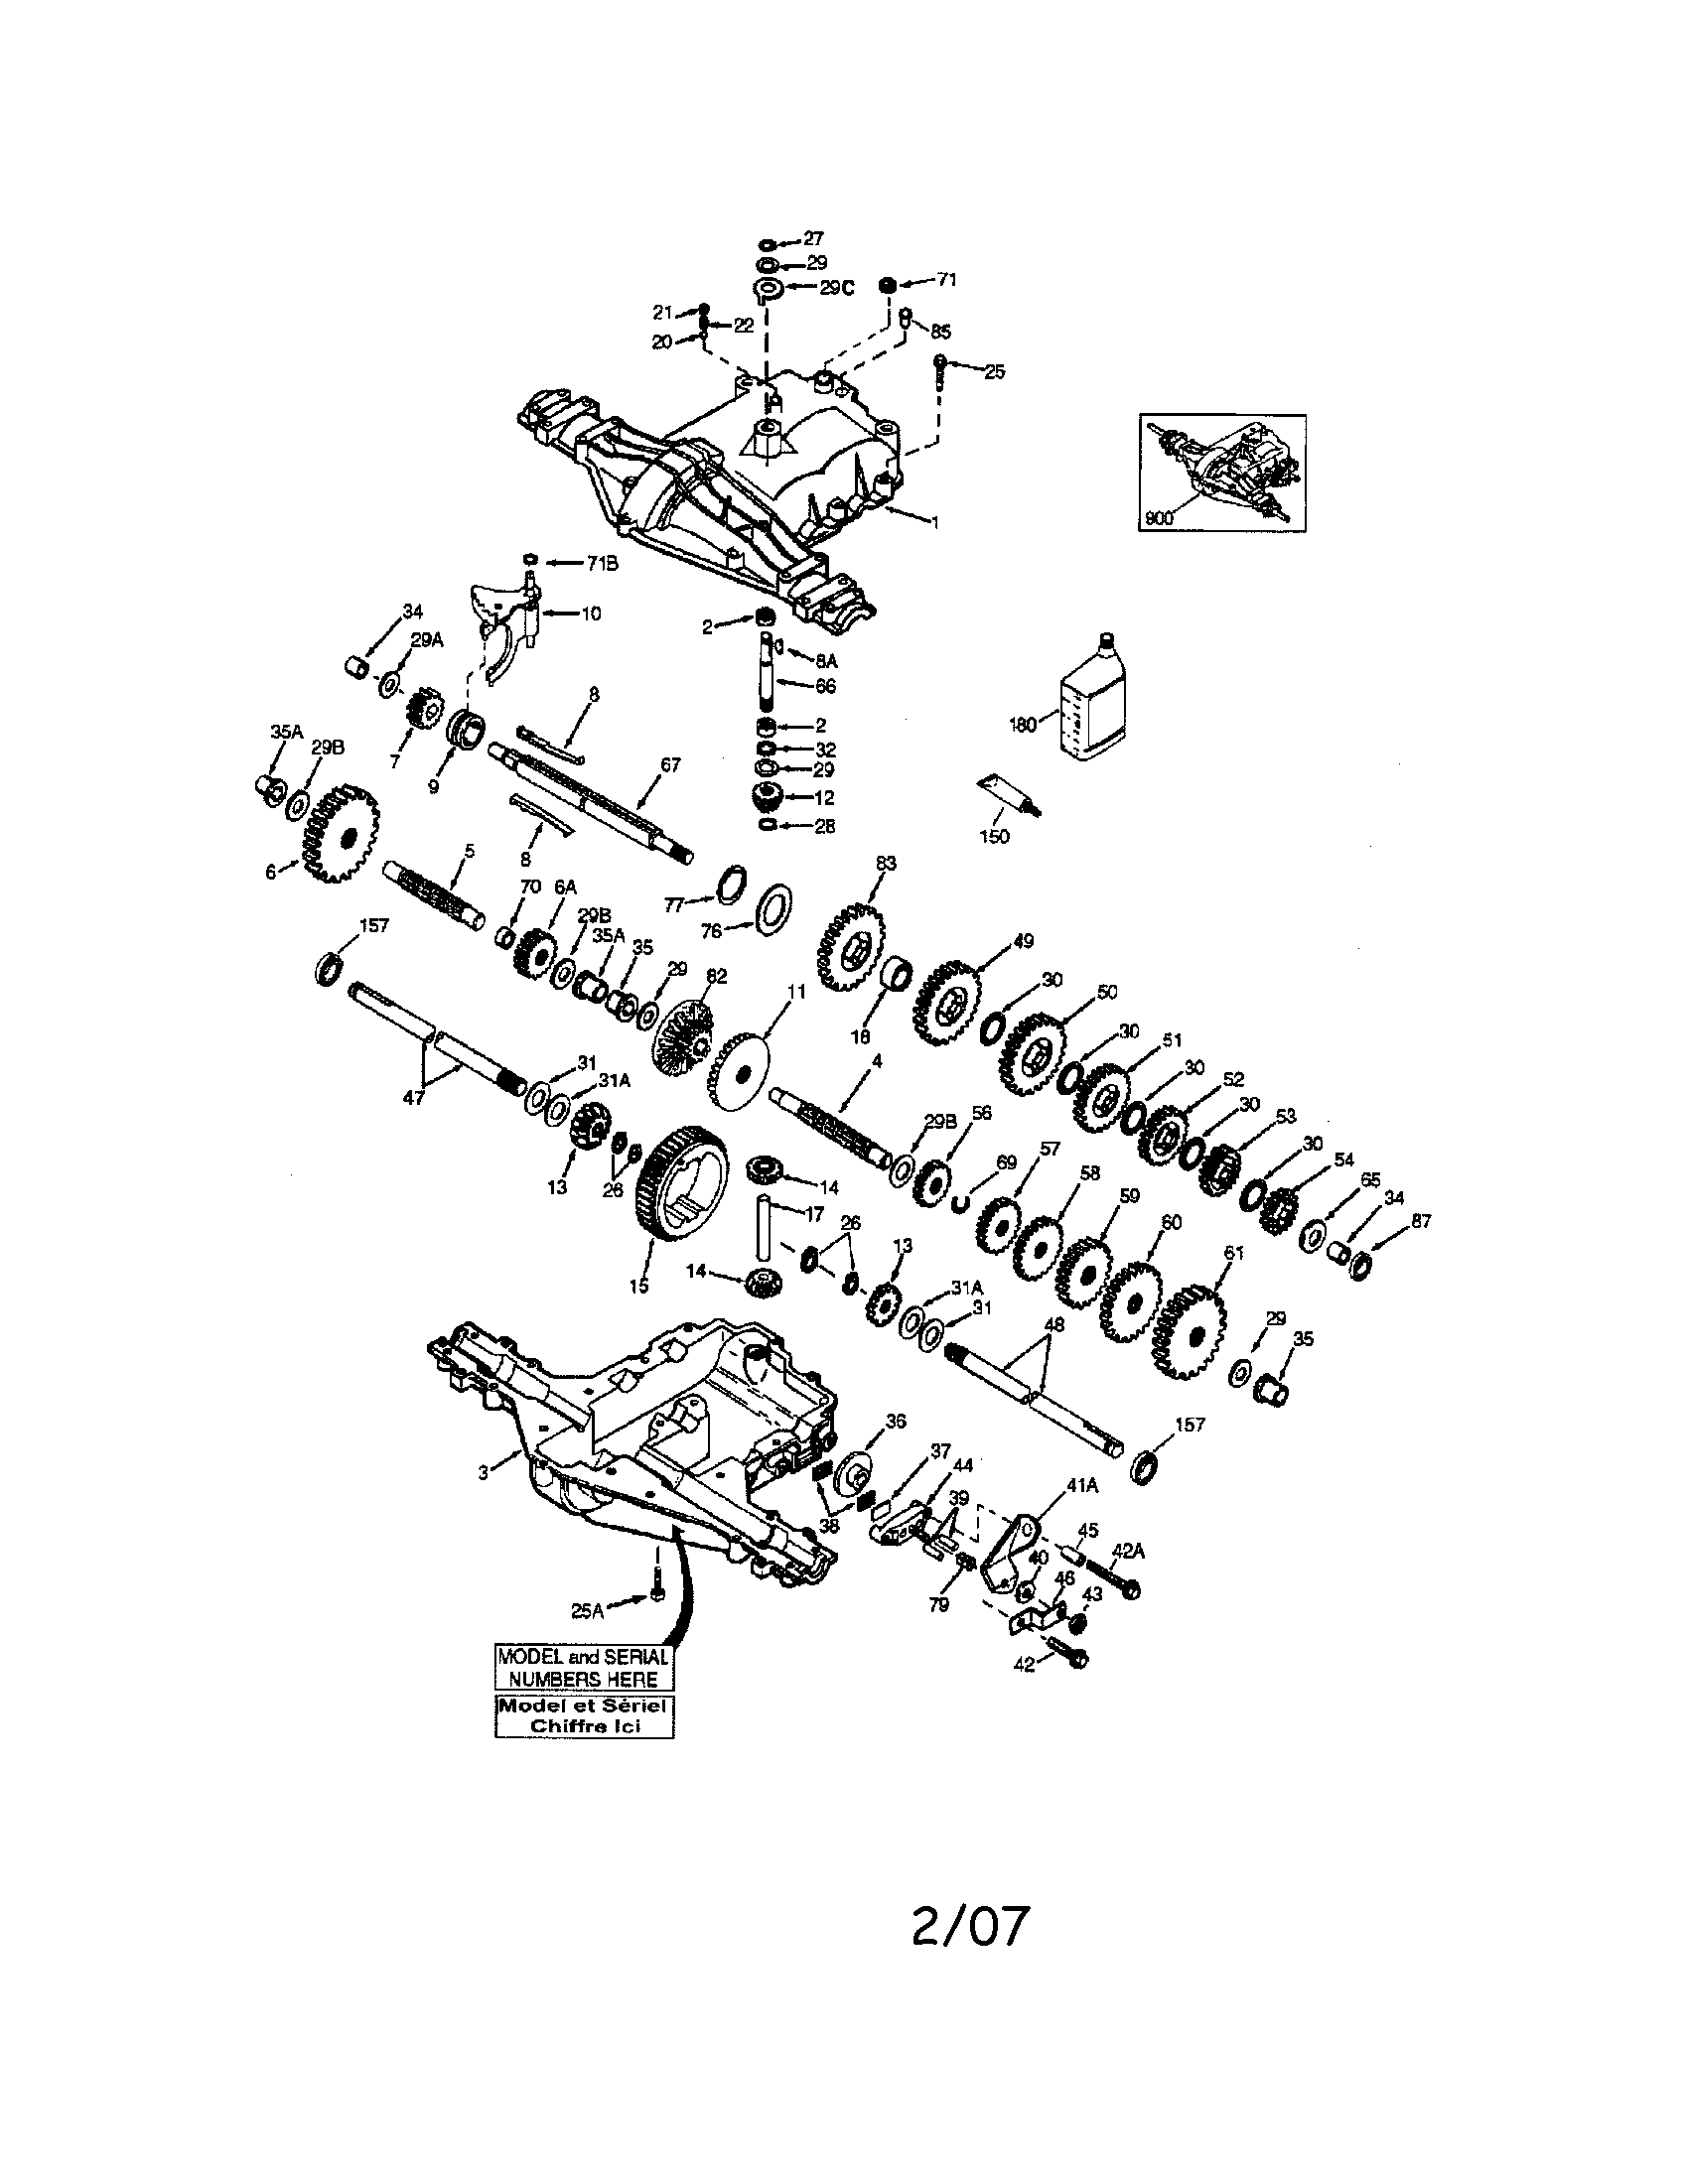 PEERLESS TRANSAXLE Diagram & Parts List for Model